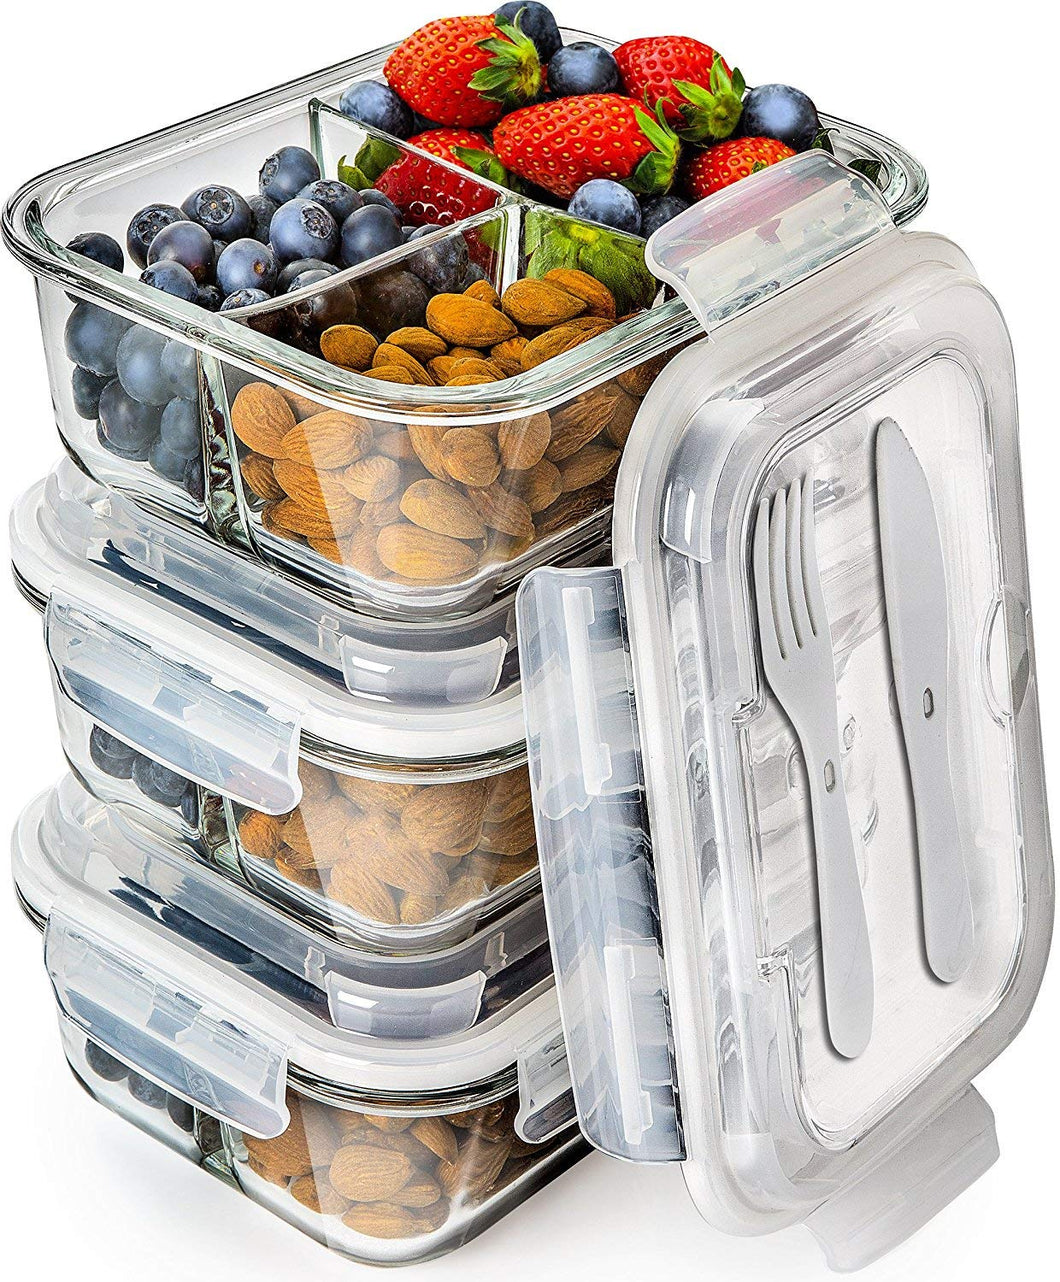 Glass Meal Prep Containers 3 Compartment - Bento Box Containers - PrepNaturals - Meal Prepping - Food Storage Containers